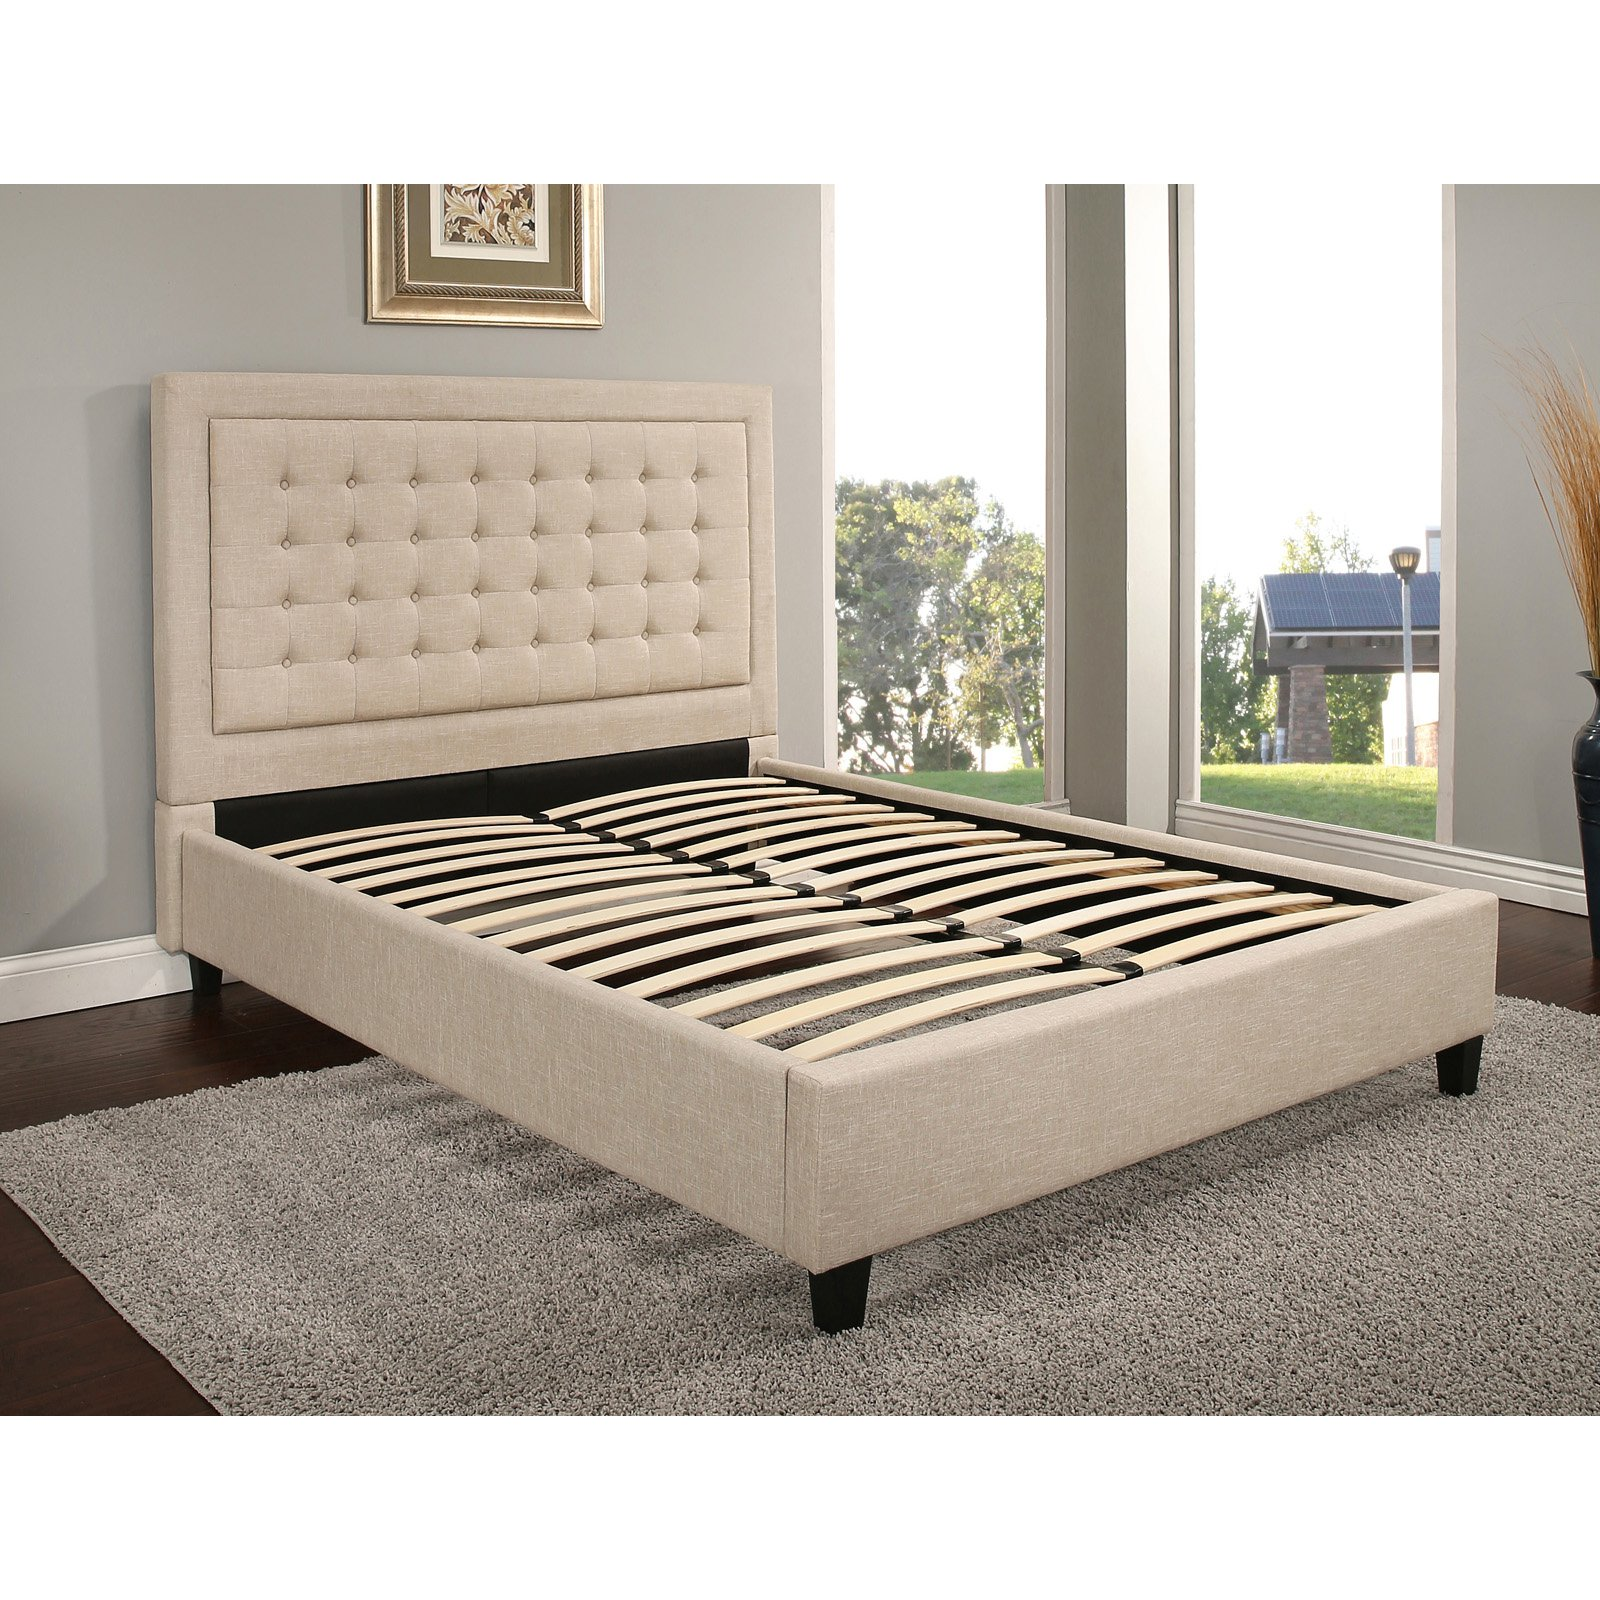 Abbyson Manning Tufted Upholstered Platform Bed